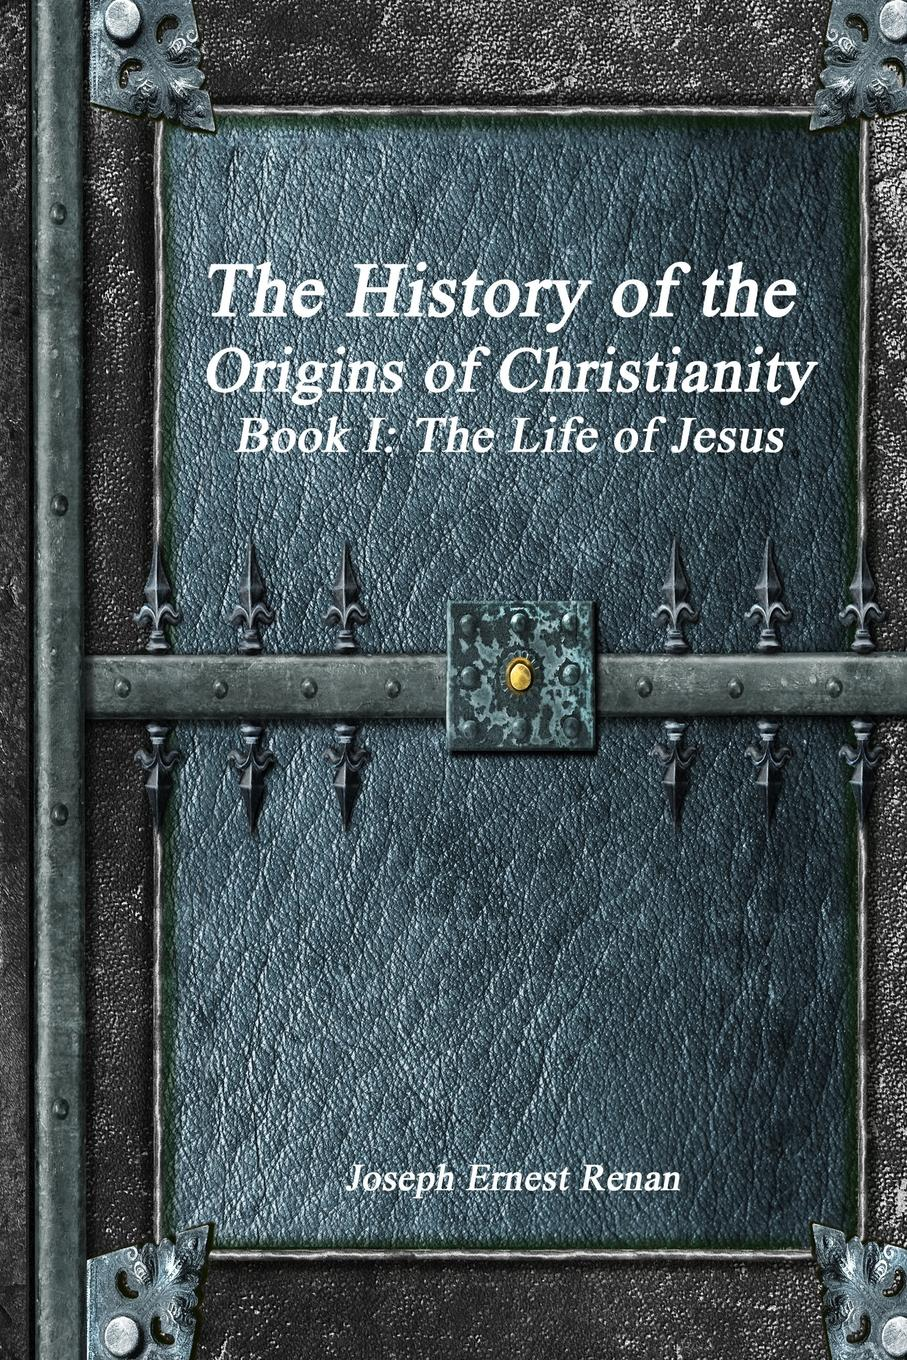 Joseph Ernest Renan The History of the Origins of Christianity - Book I. The Life of Jesus r sugirtharajah s exploring postcolonial biblical criticism history method practice